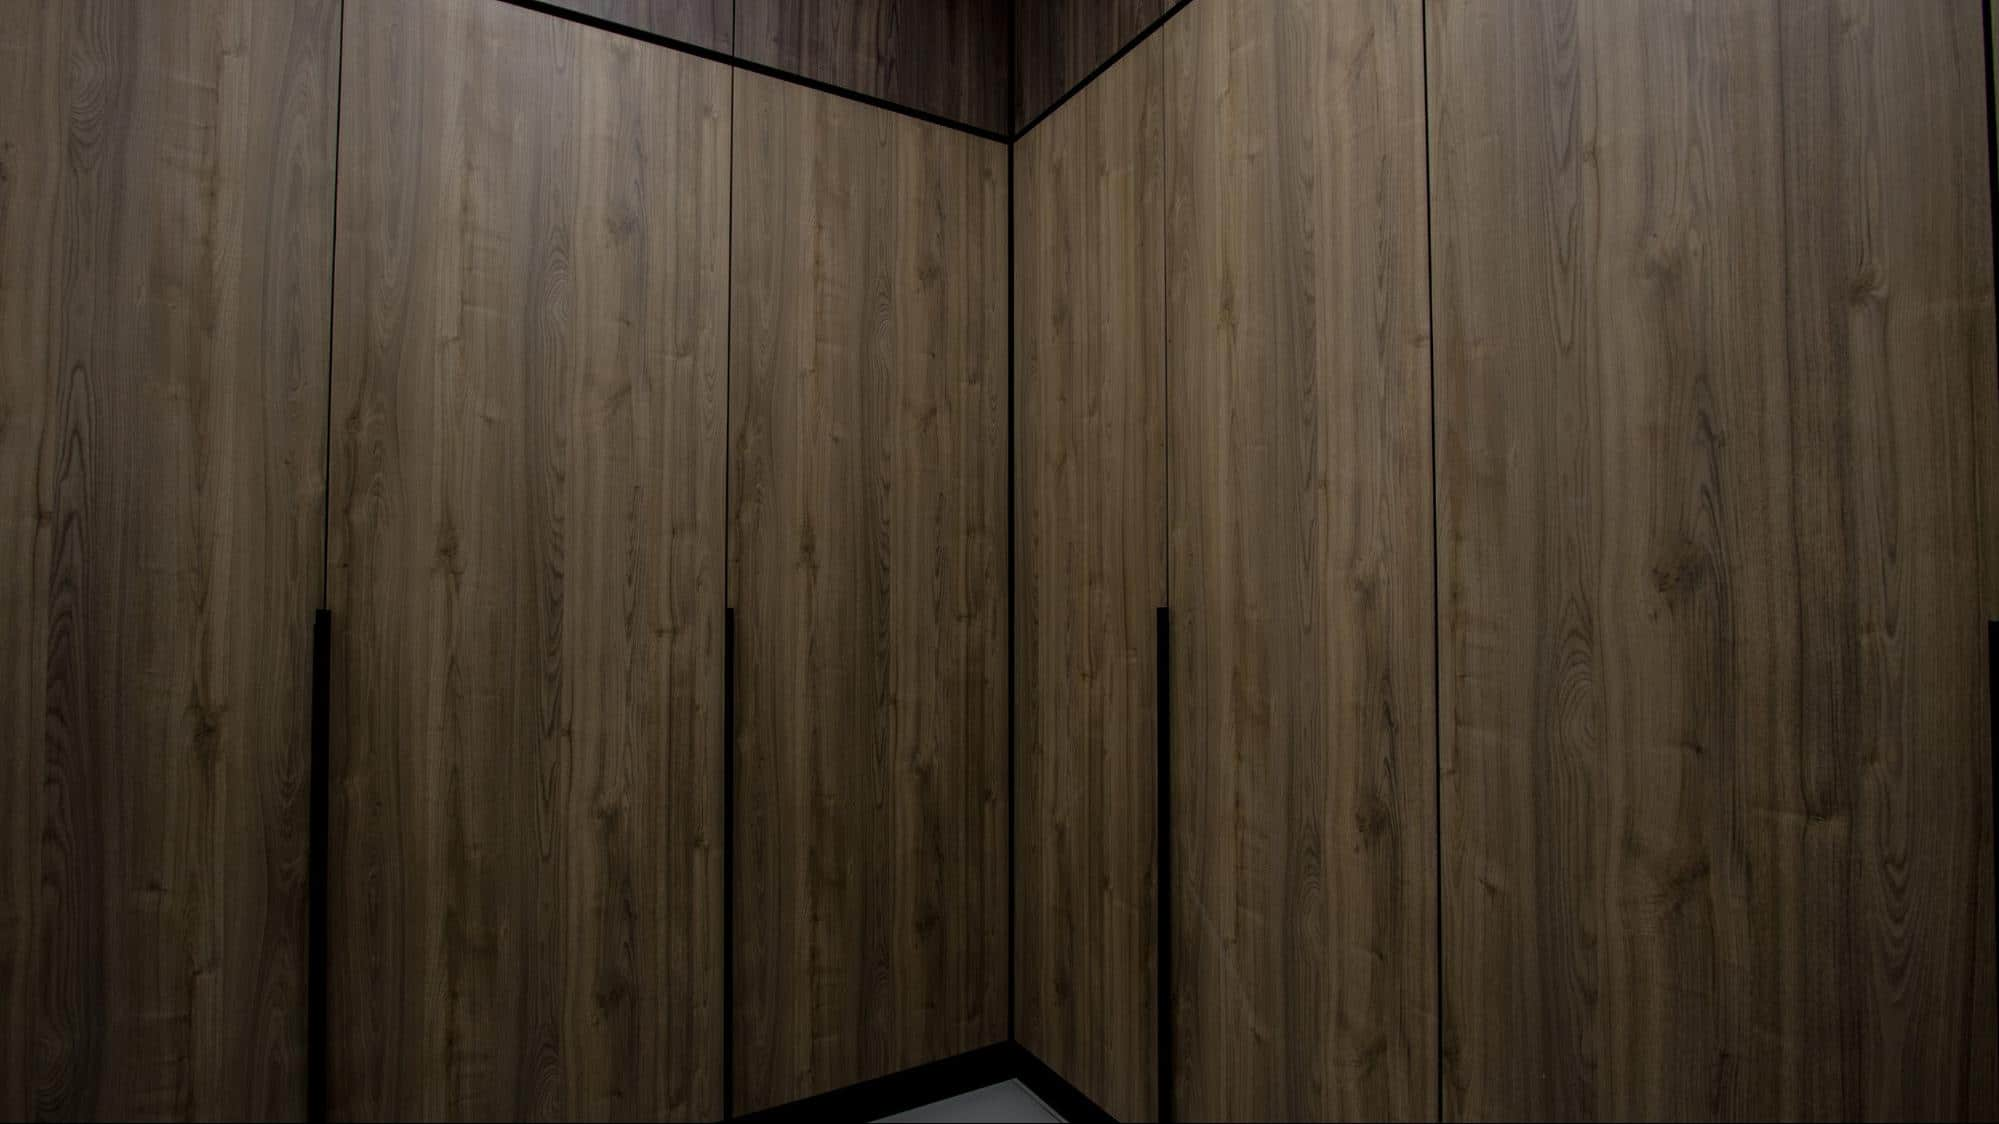 Walk-in wardrobe with brown built-in cabinetry